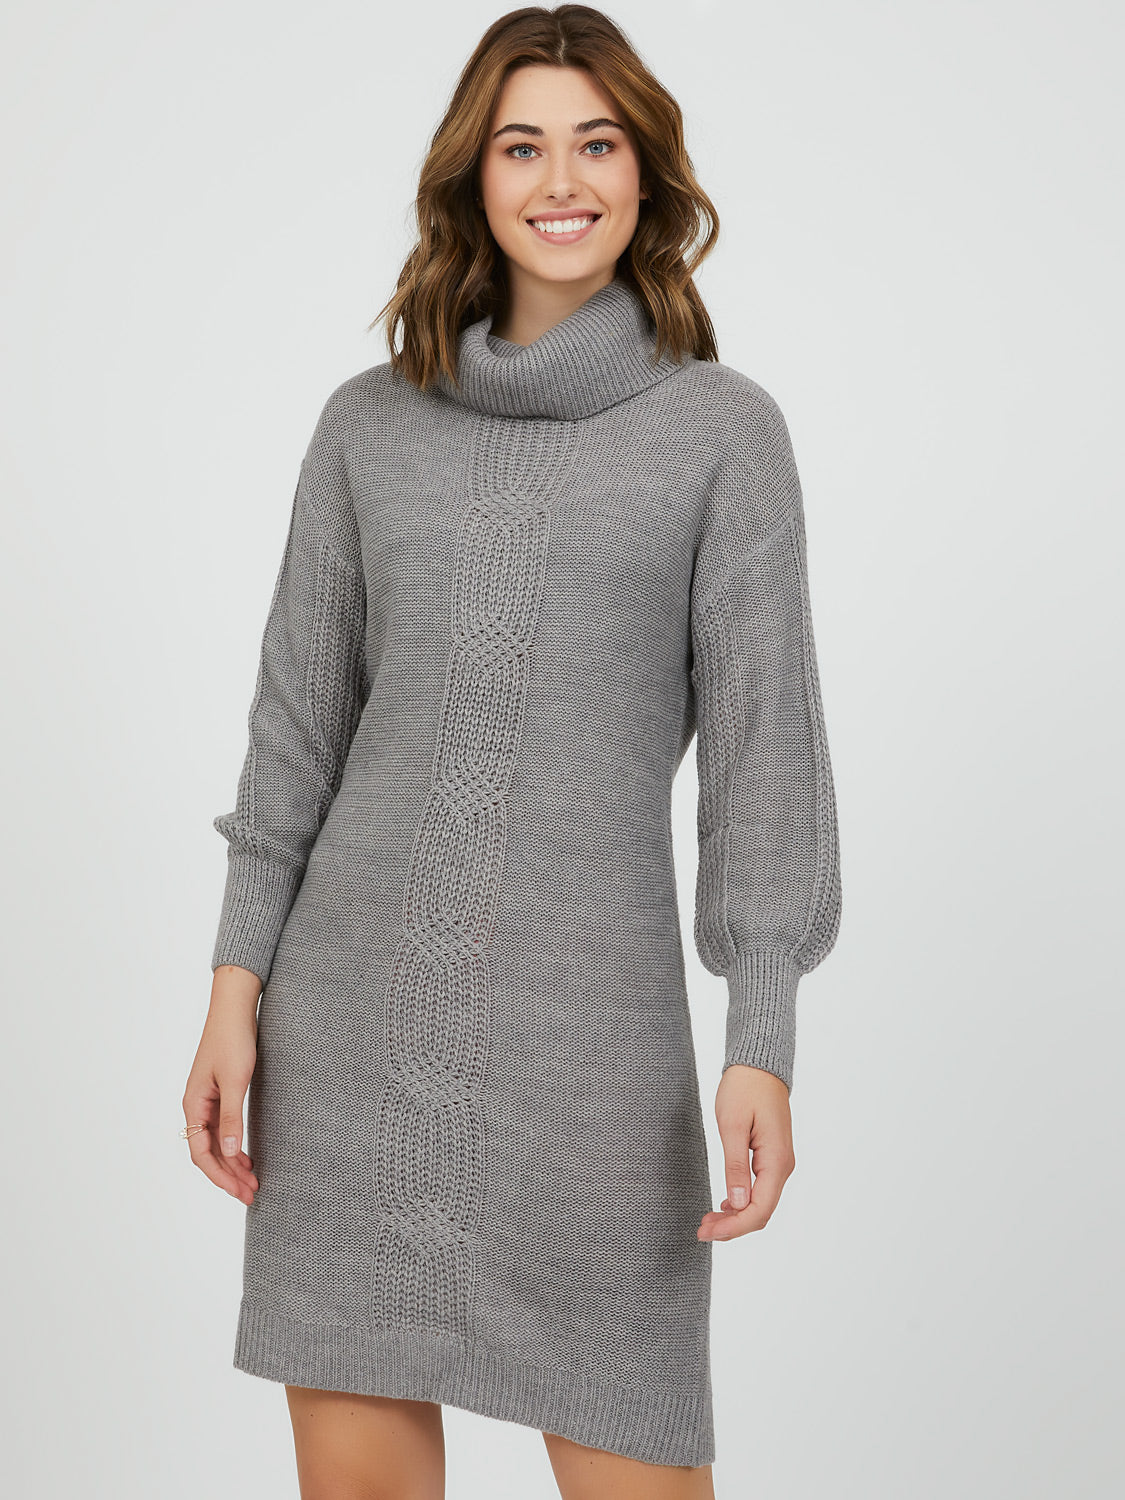 Cable Knit Sweater Mini Dress